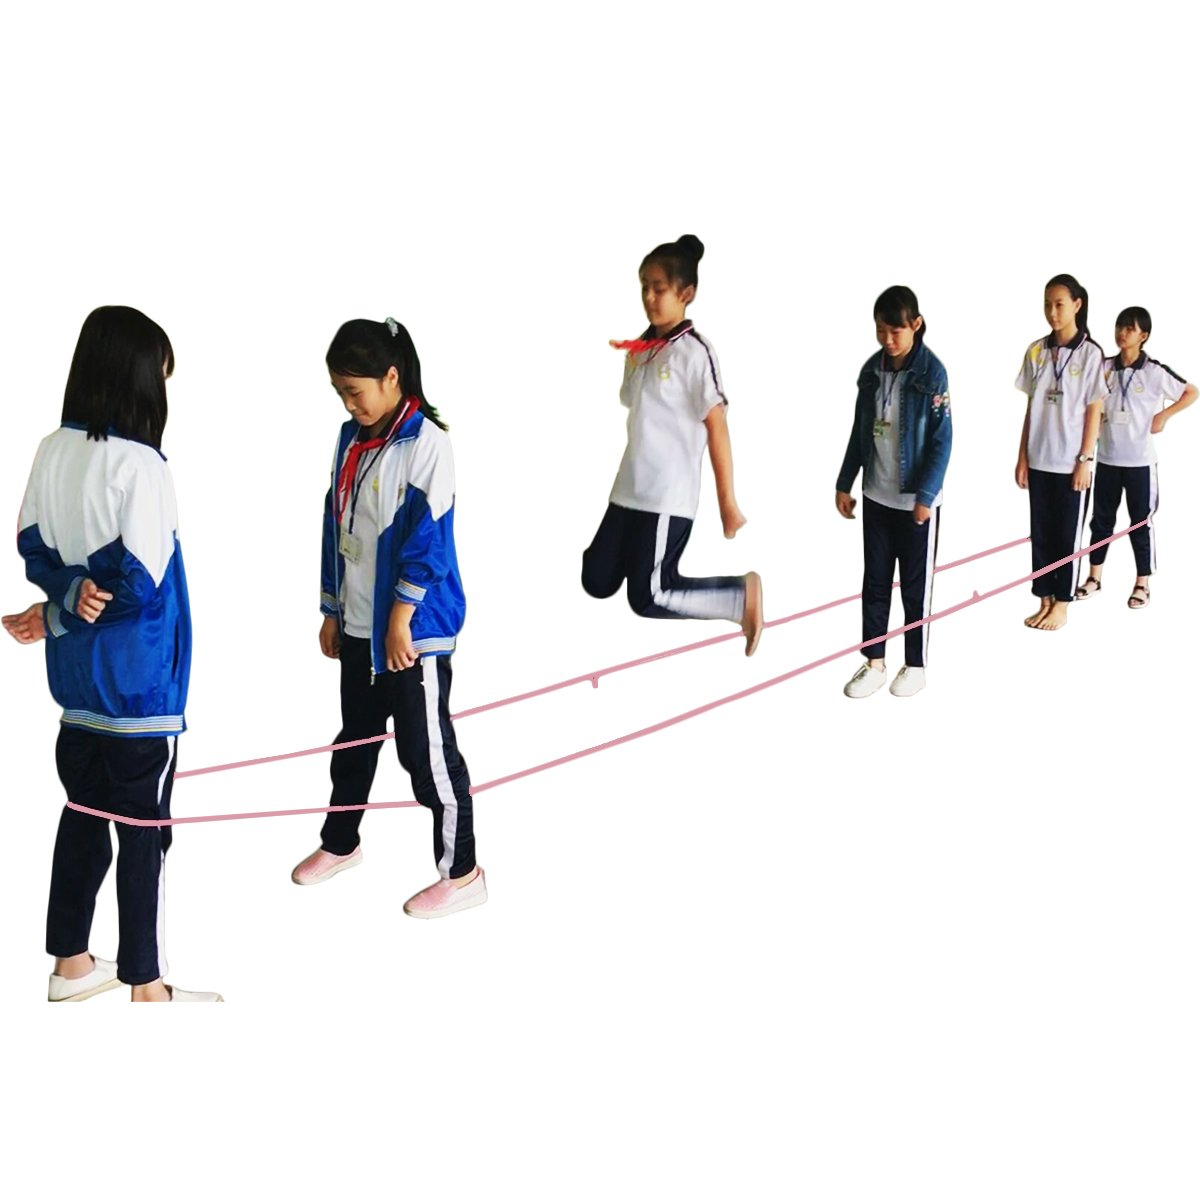 22-foot Chinese Jump Rope for Kids - GreenMoon Long Rubber Chinese Jump Rope